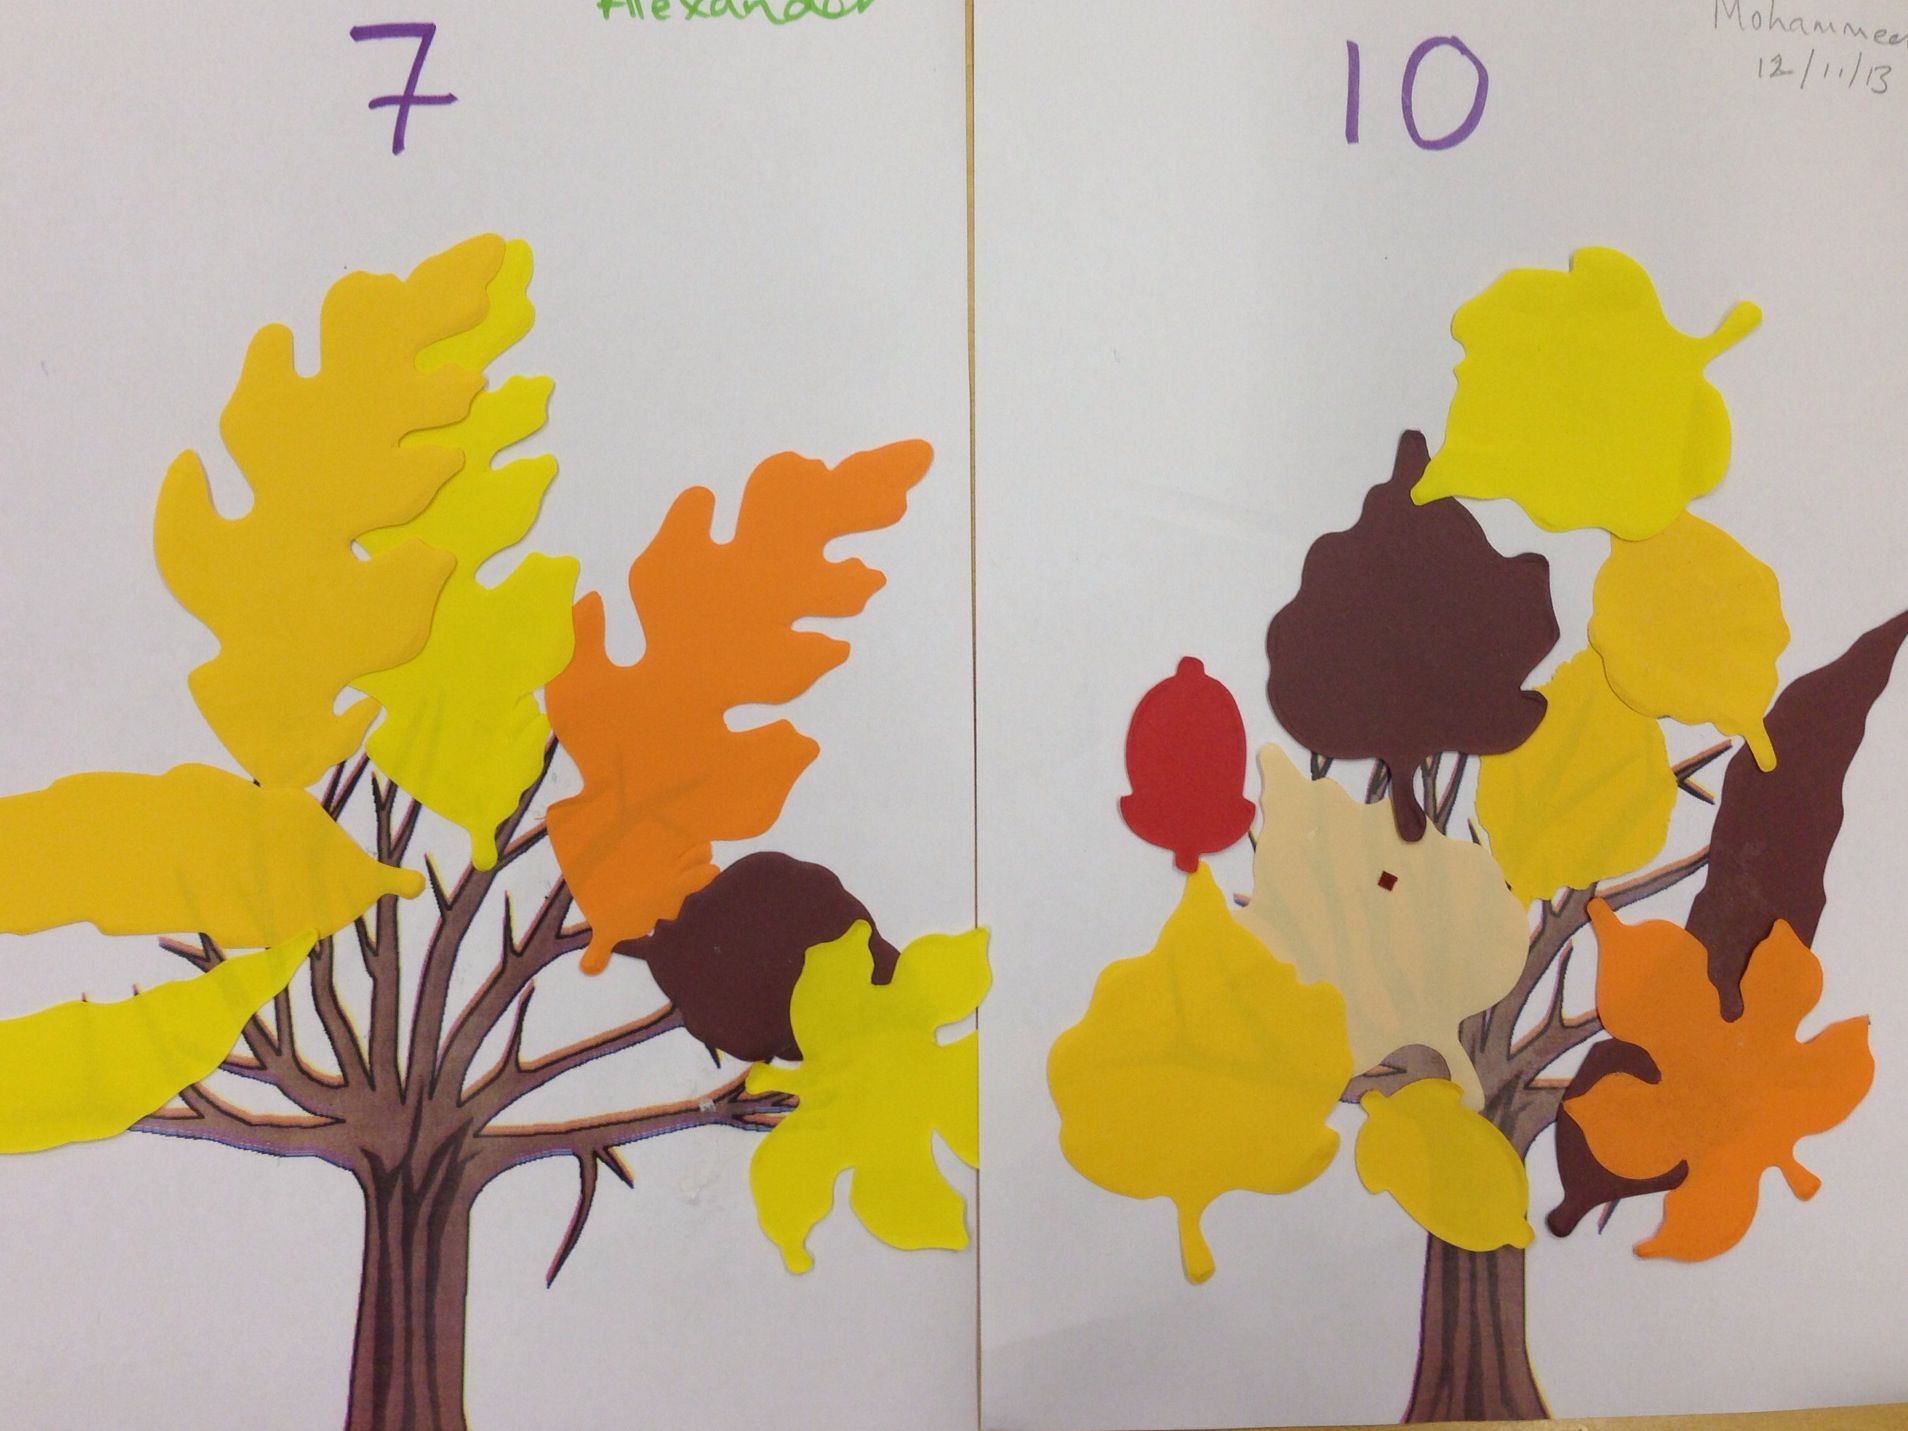 Matching The Correct Number Of Autumn Leaves To The Numeral Above The Tree Eyfs Pre School